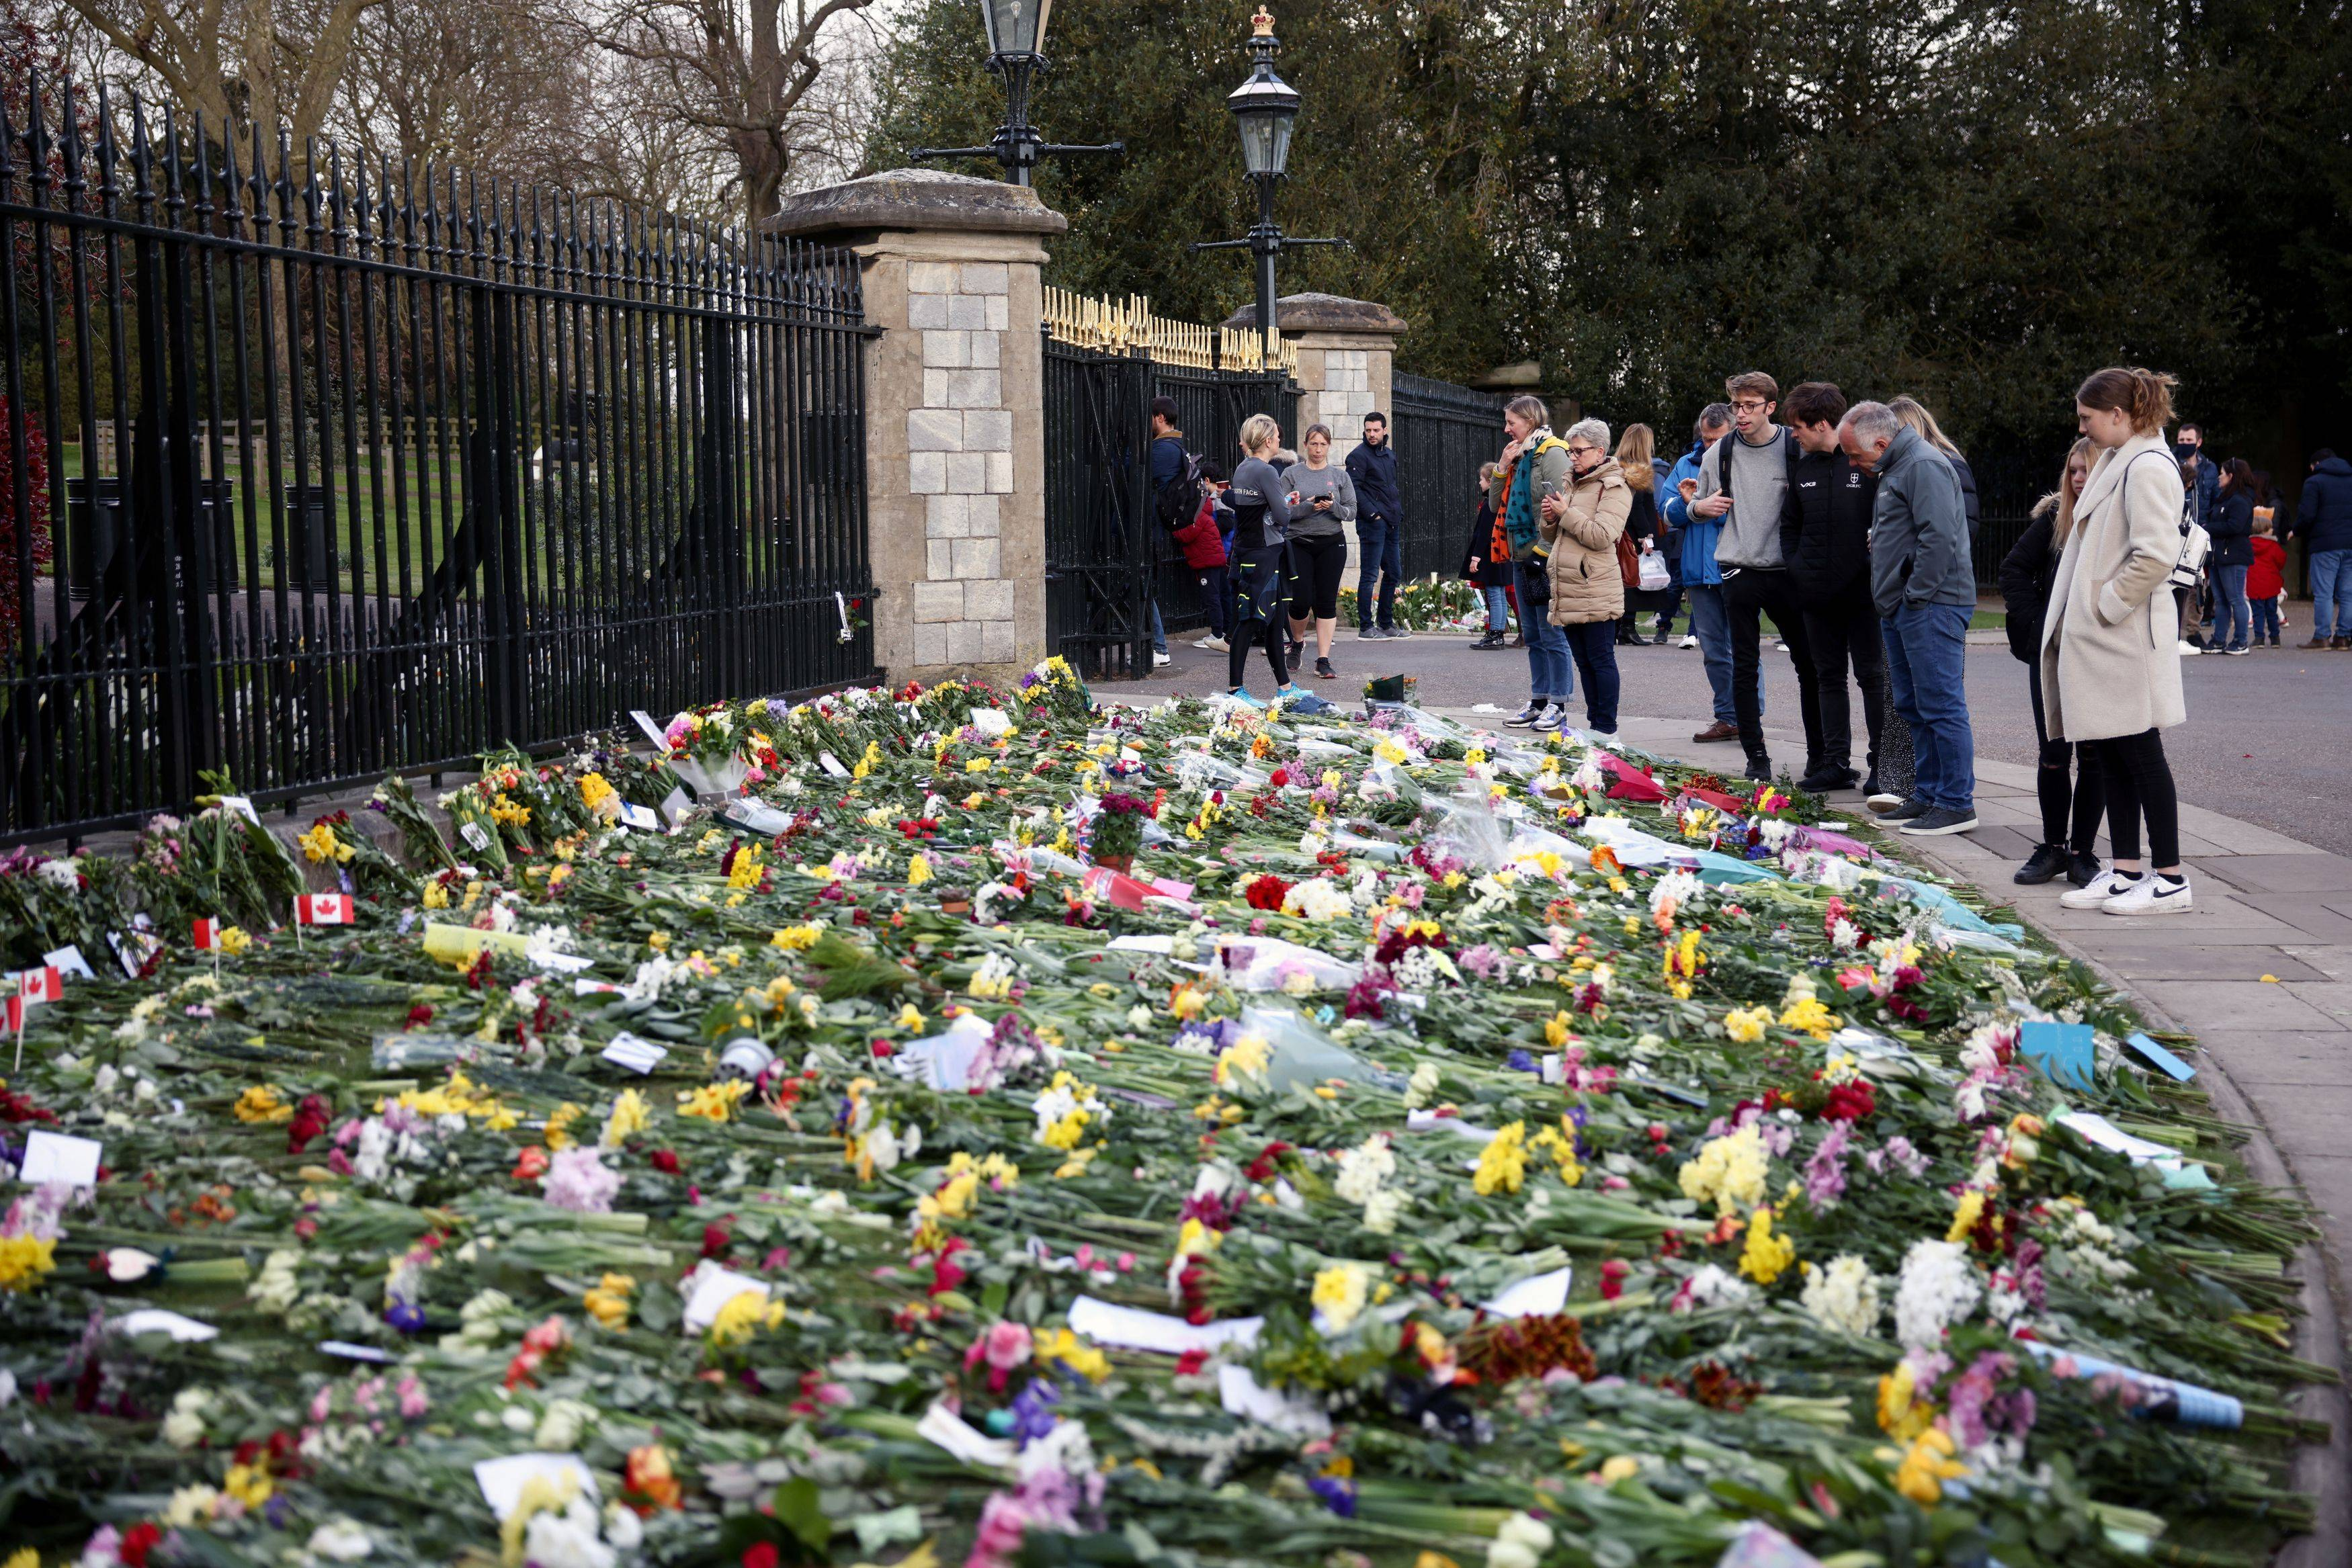 Signs of mourning were everywhere in Britain on Sunday, as churches across the country held remembrance services for Prince Philip, who died Friday at 99. Well-wishers have left hundreds of floral tributes outside Windsor Castle, but some Britons are growing frustrated with the amount of attention lavished on the departed monarch. More than 125,000 people have died of the coronavirus in the United Kingdom over the past year, and some fear that wall-to-wall coverage of the royals is overshadowing other issues of major national concern, like the rising unrest in Northern Ireland. (Henry Nicholls/Reuters)